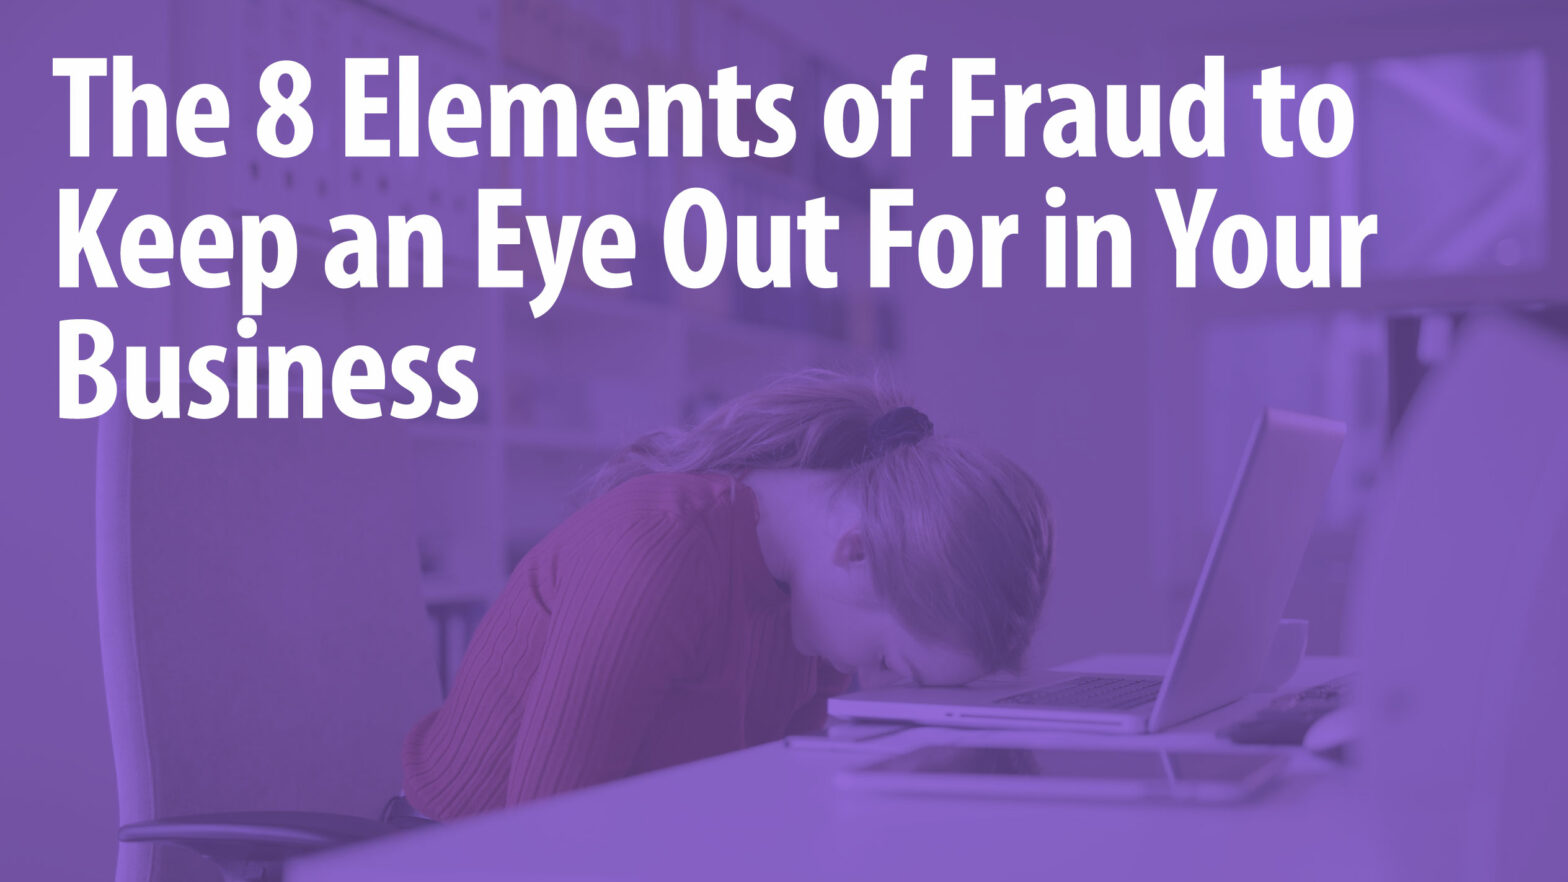 Elements of Fraud Article Header